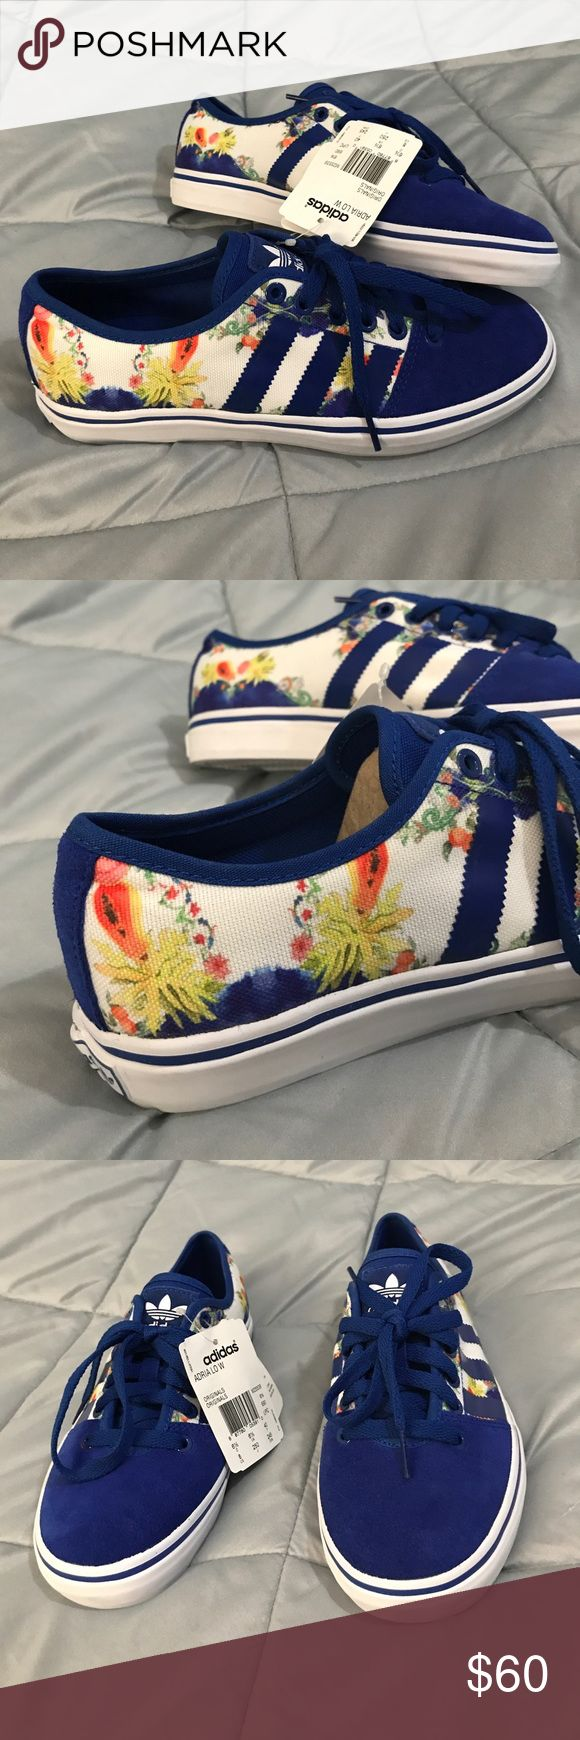 💙Adidas Adria Low Shoes💙 Size 8, new with tags, never worn. Blue, floral print, & white in color. Very good lookin shoes!! 💙 adidas Shoes